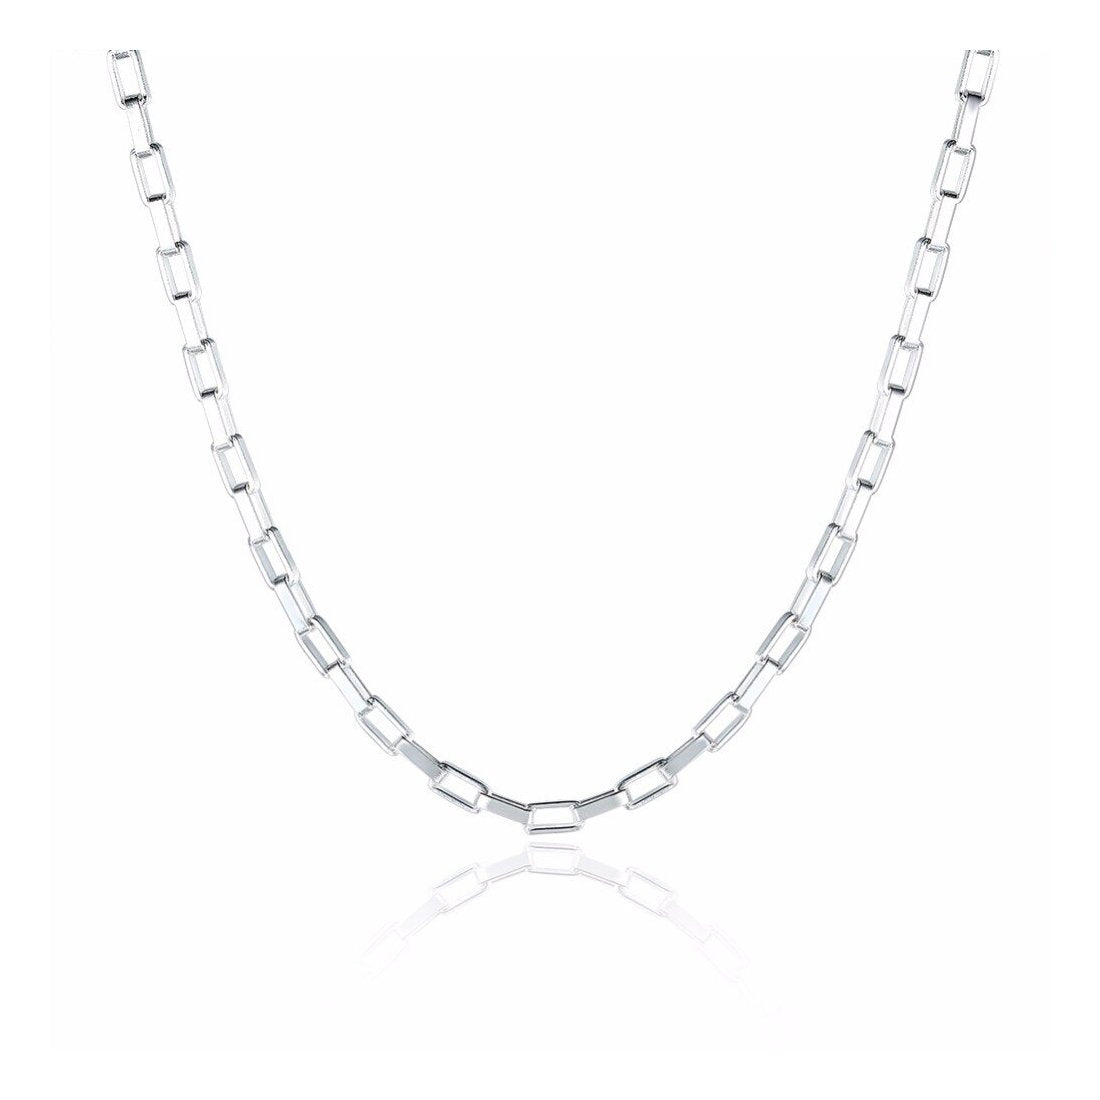 "5.1MM 110 Square Forzatina Chain .925 Solid Sterling Silver Sizes 7""-28"" Inches"